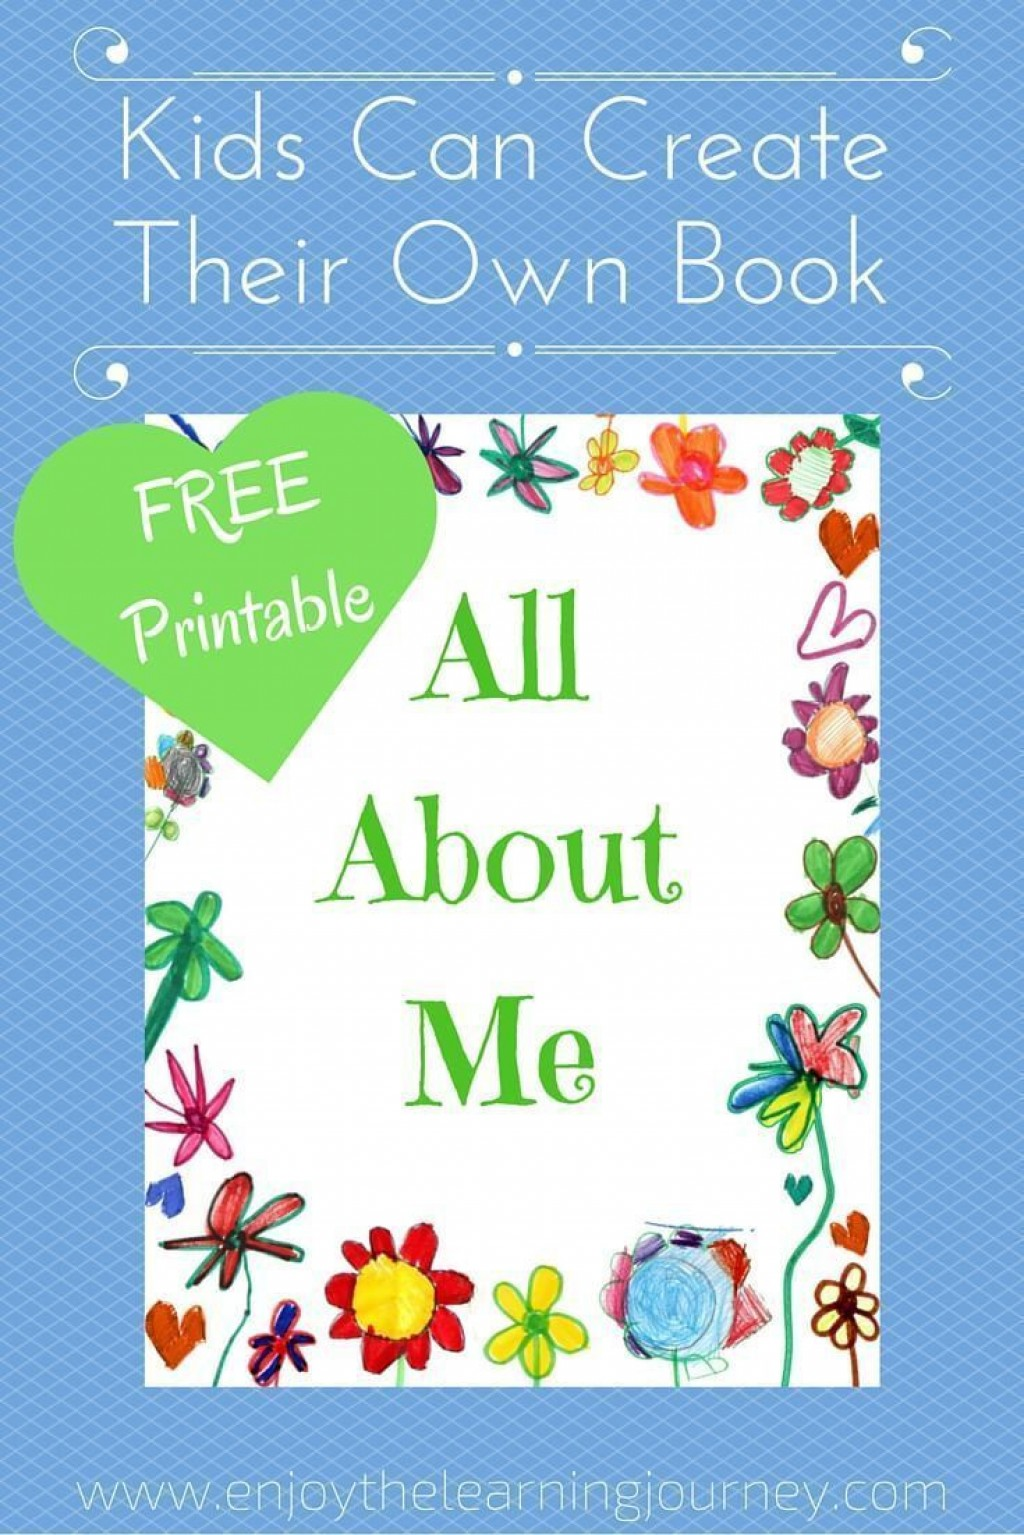 002 Phenomenal Book Template For Kid Example  KidsLarge